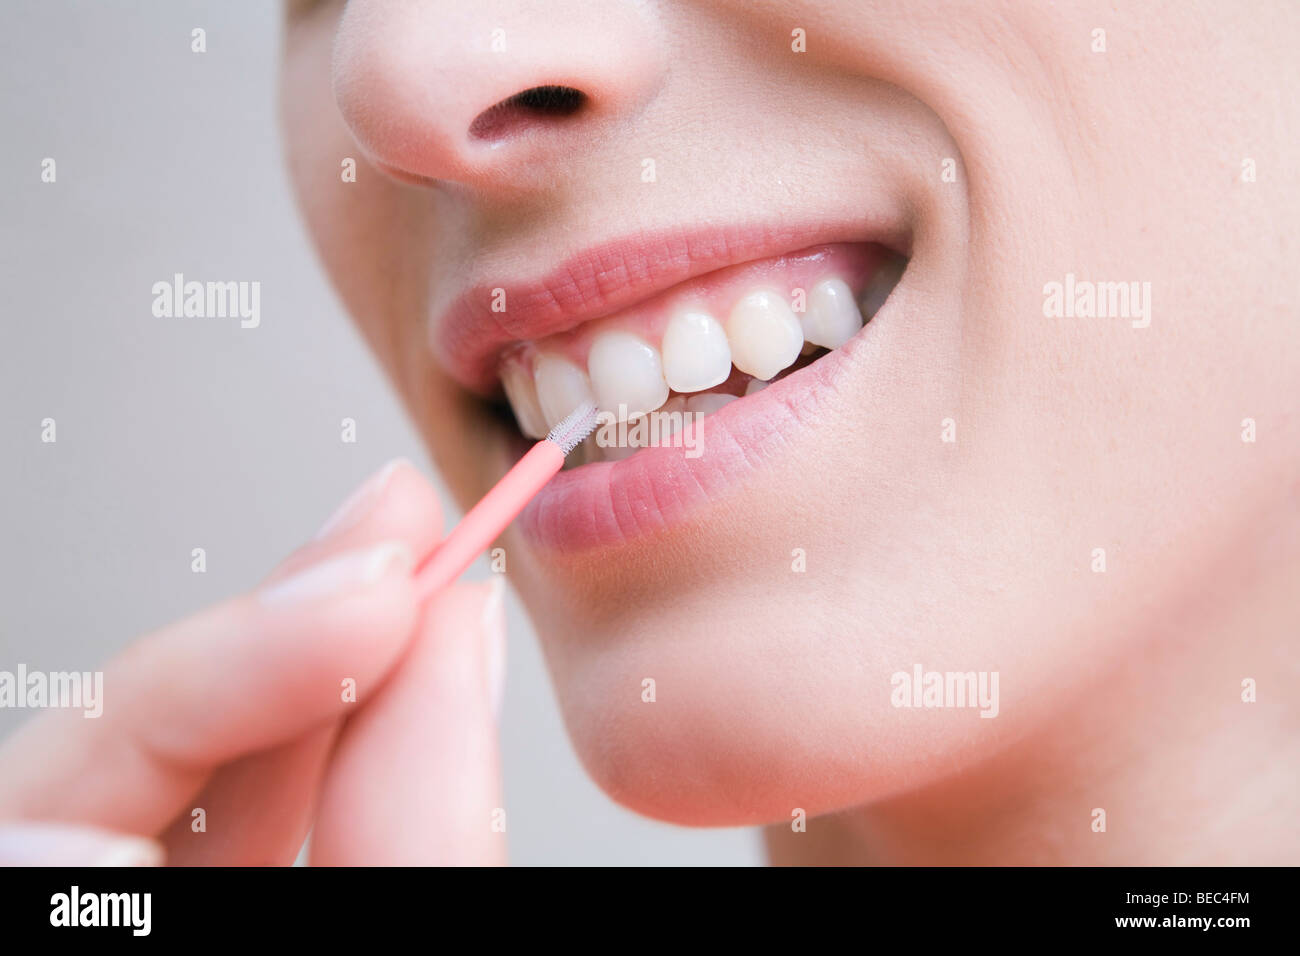 Woman cleaning teeth with interdental brush. - Stock Image